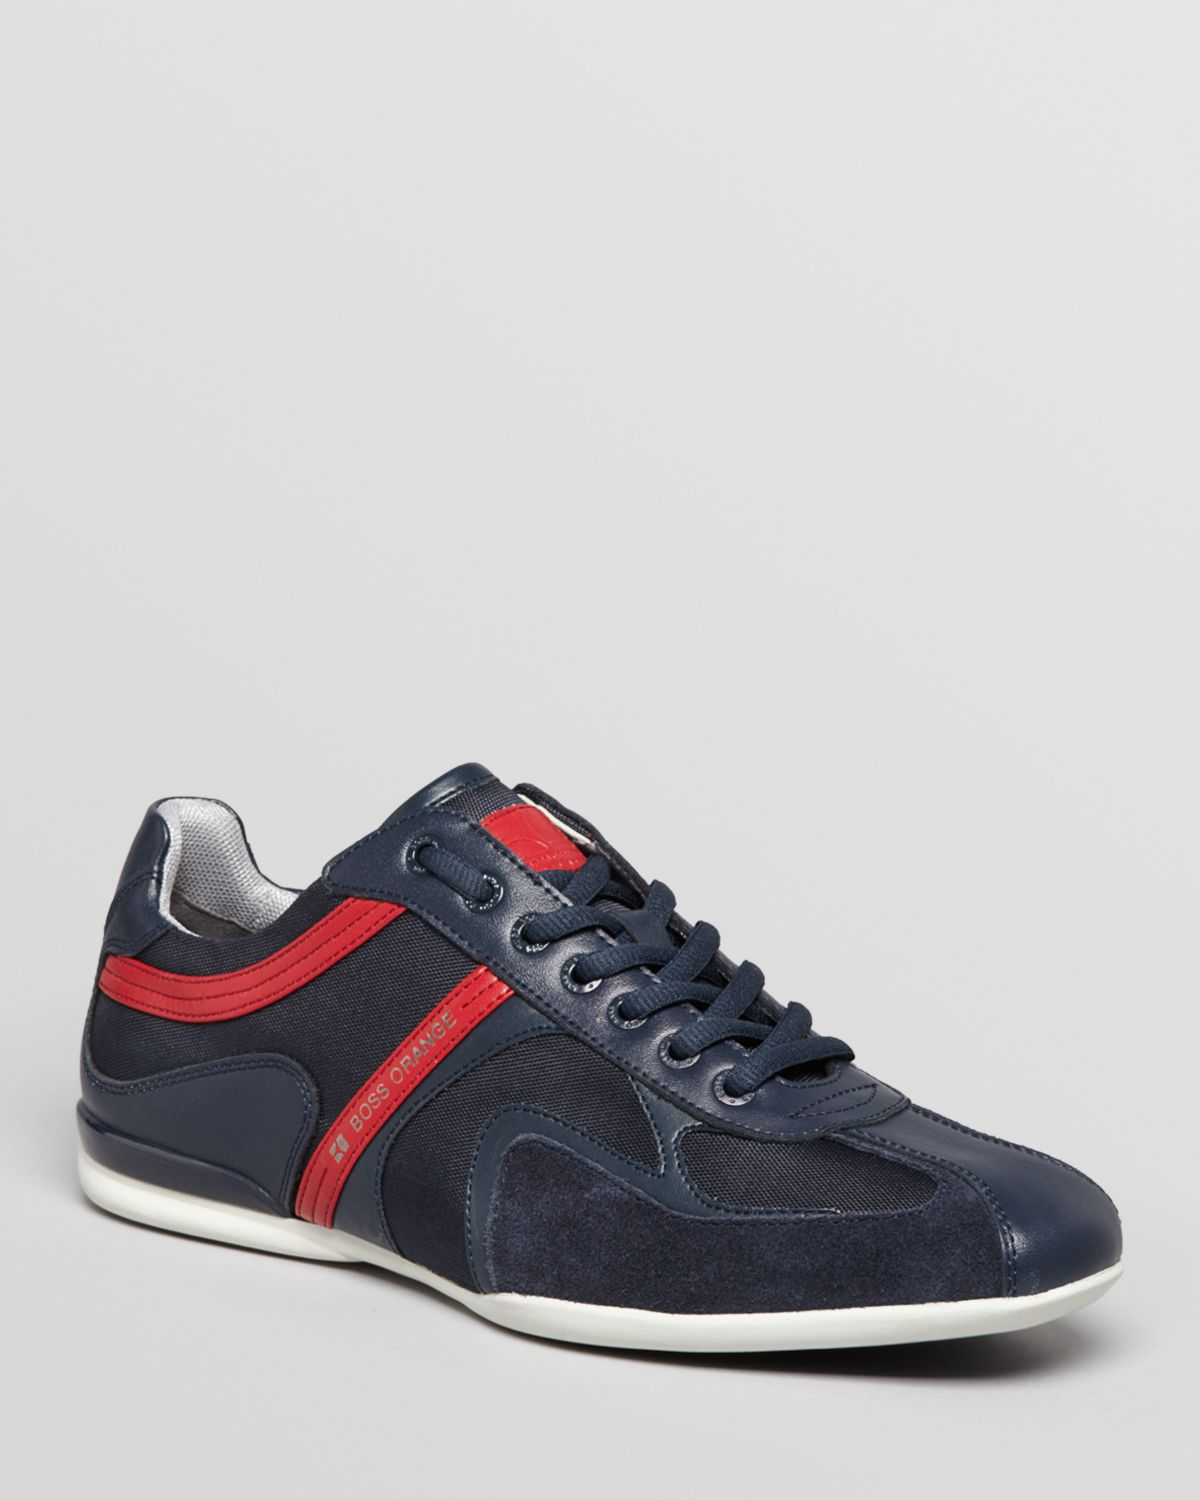 hugo boss boss orange seamon sneakers in blue for men navy lyst. Black Bedroom Furniture Sets. Home Design Ideas